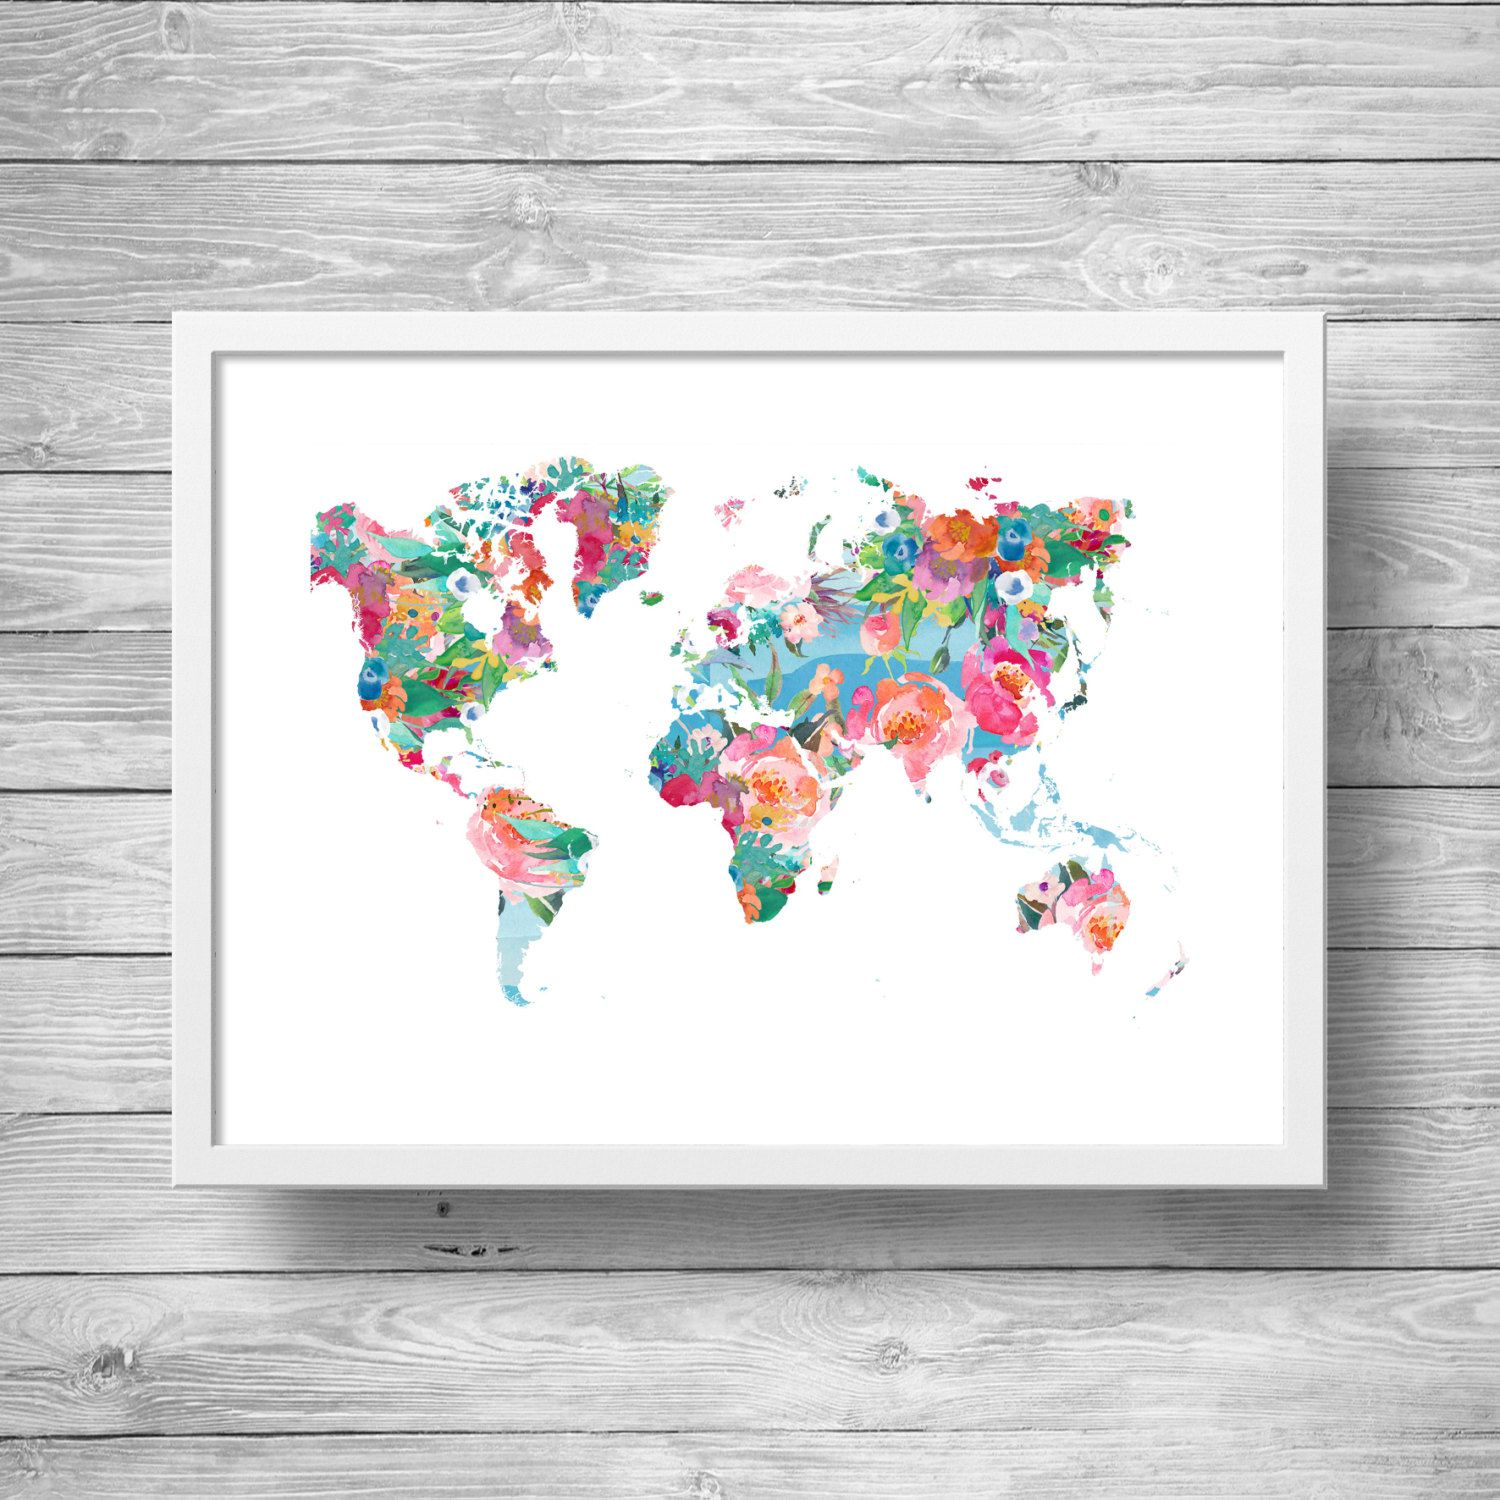 World map printable art wanderlust floral watercolor world map printable art world map floral watercolor world map geography print travel decor gumiabroncs Gallery